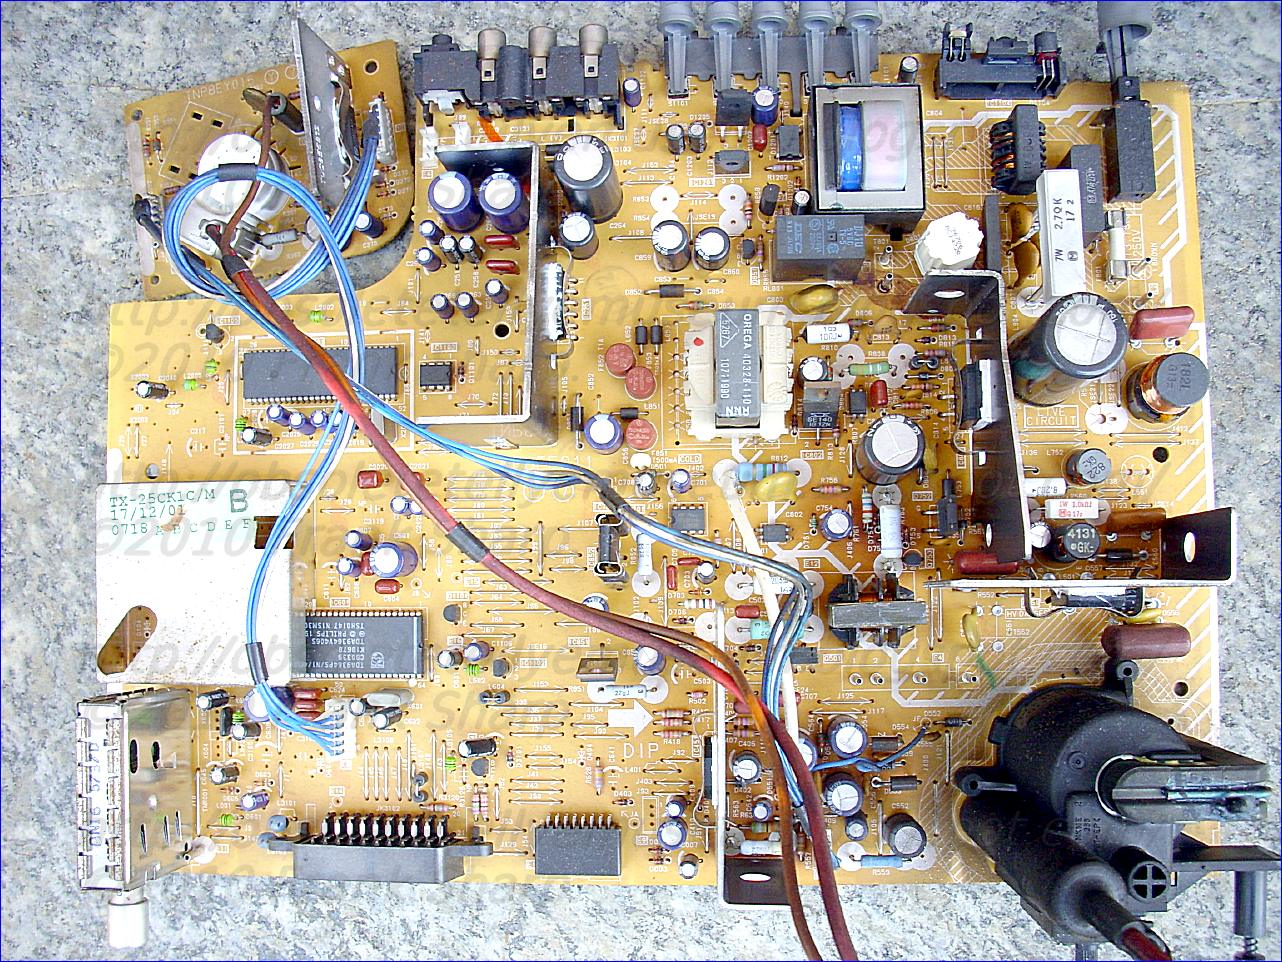 Obsolete Technology Tellye Panasonic Tx 25ck1c M Chassis Z8 Wiring Diagram Removed From The Power Supply Circuit